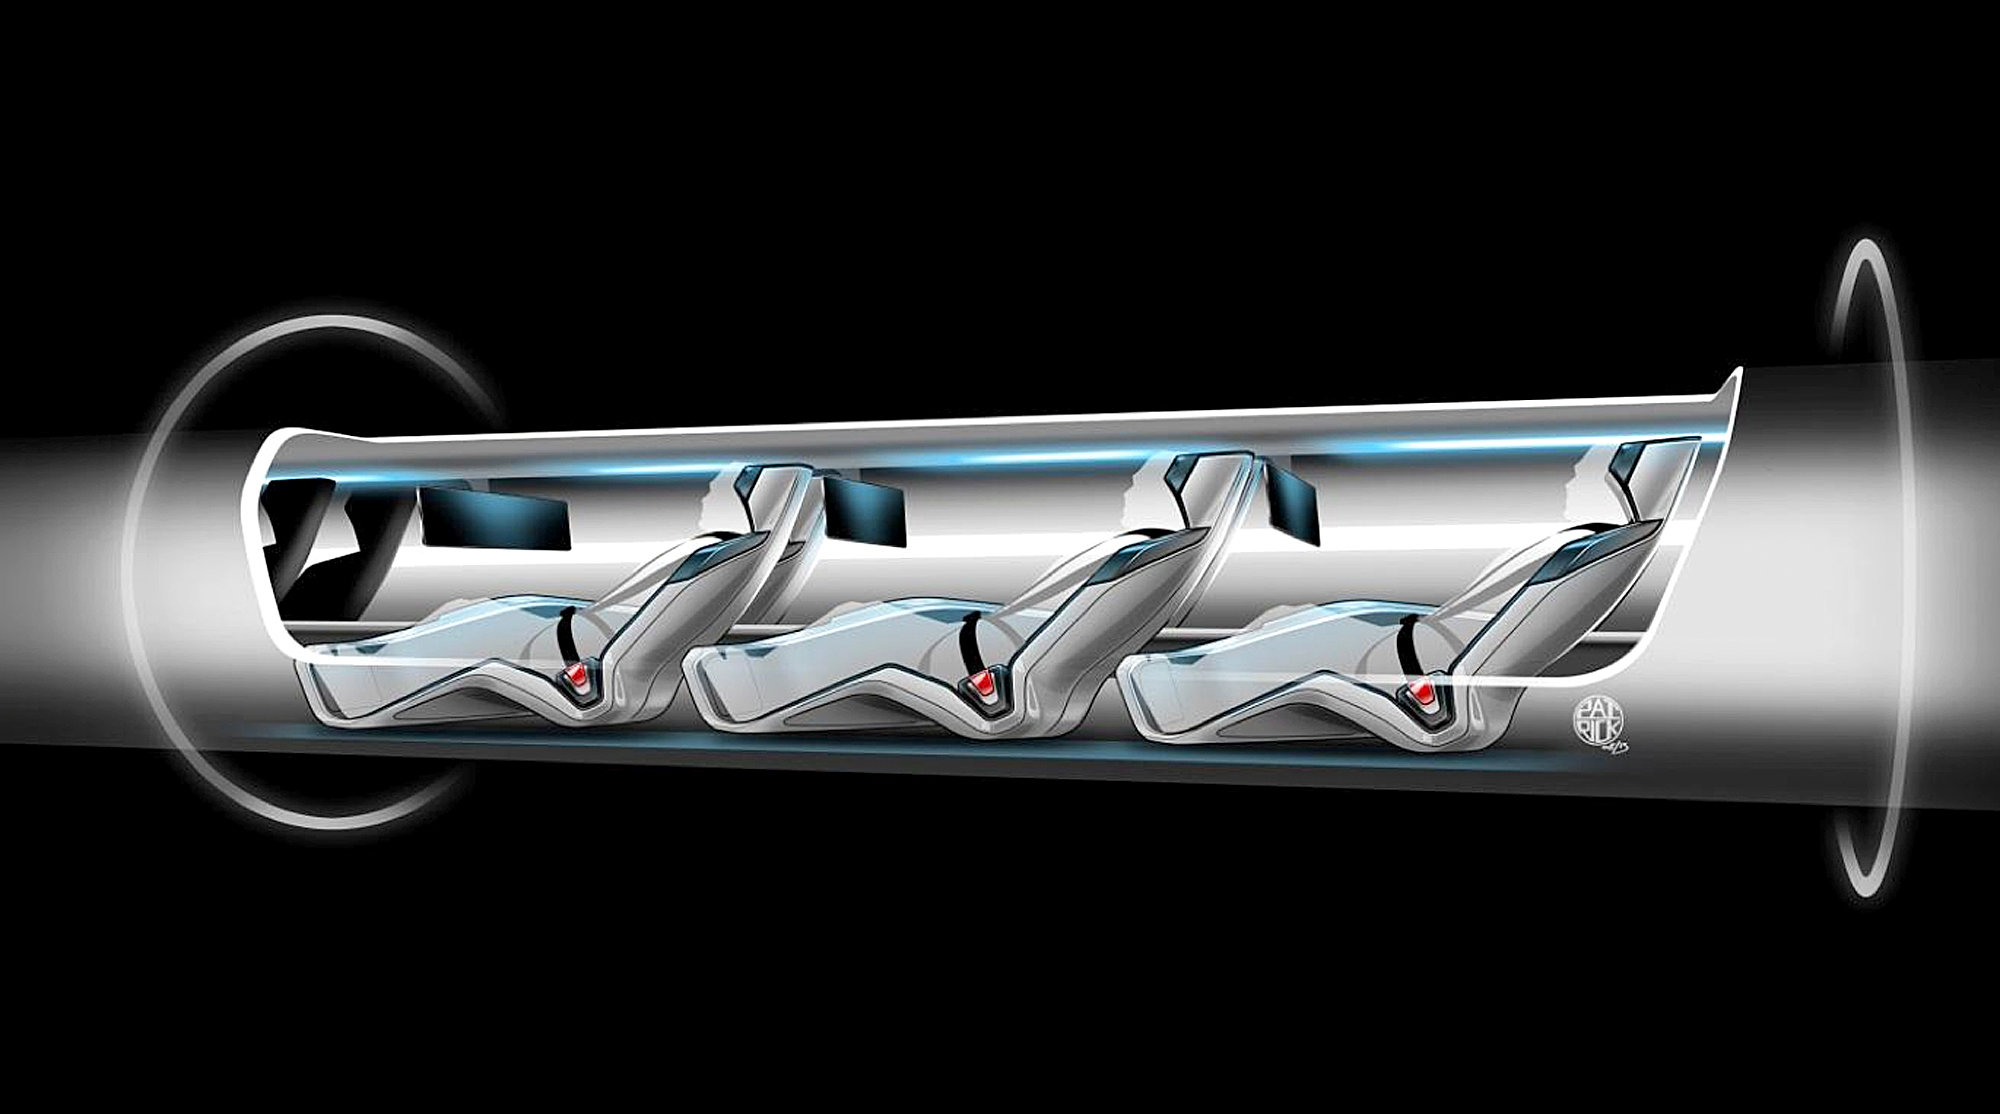 Tesla CEO Elon Musk present Hyperloop transport system project